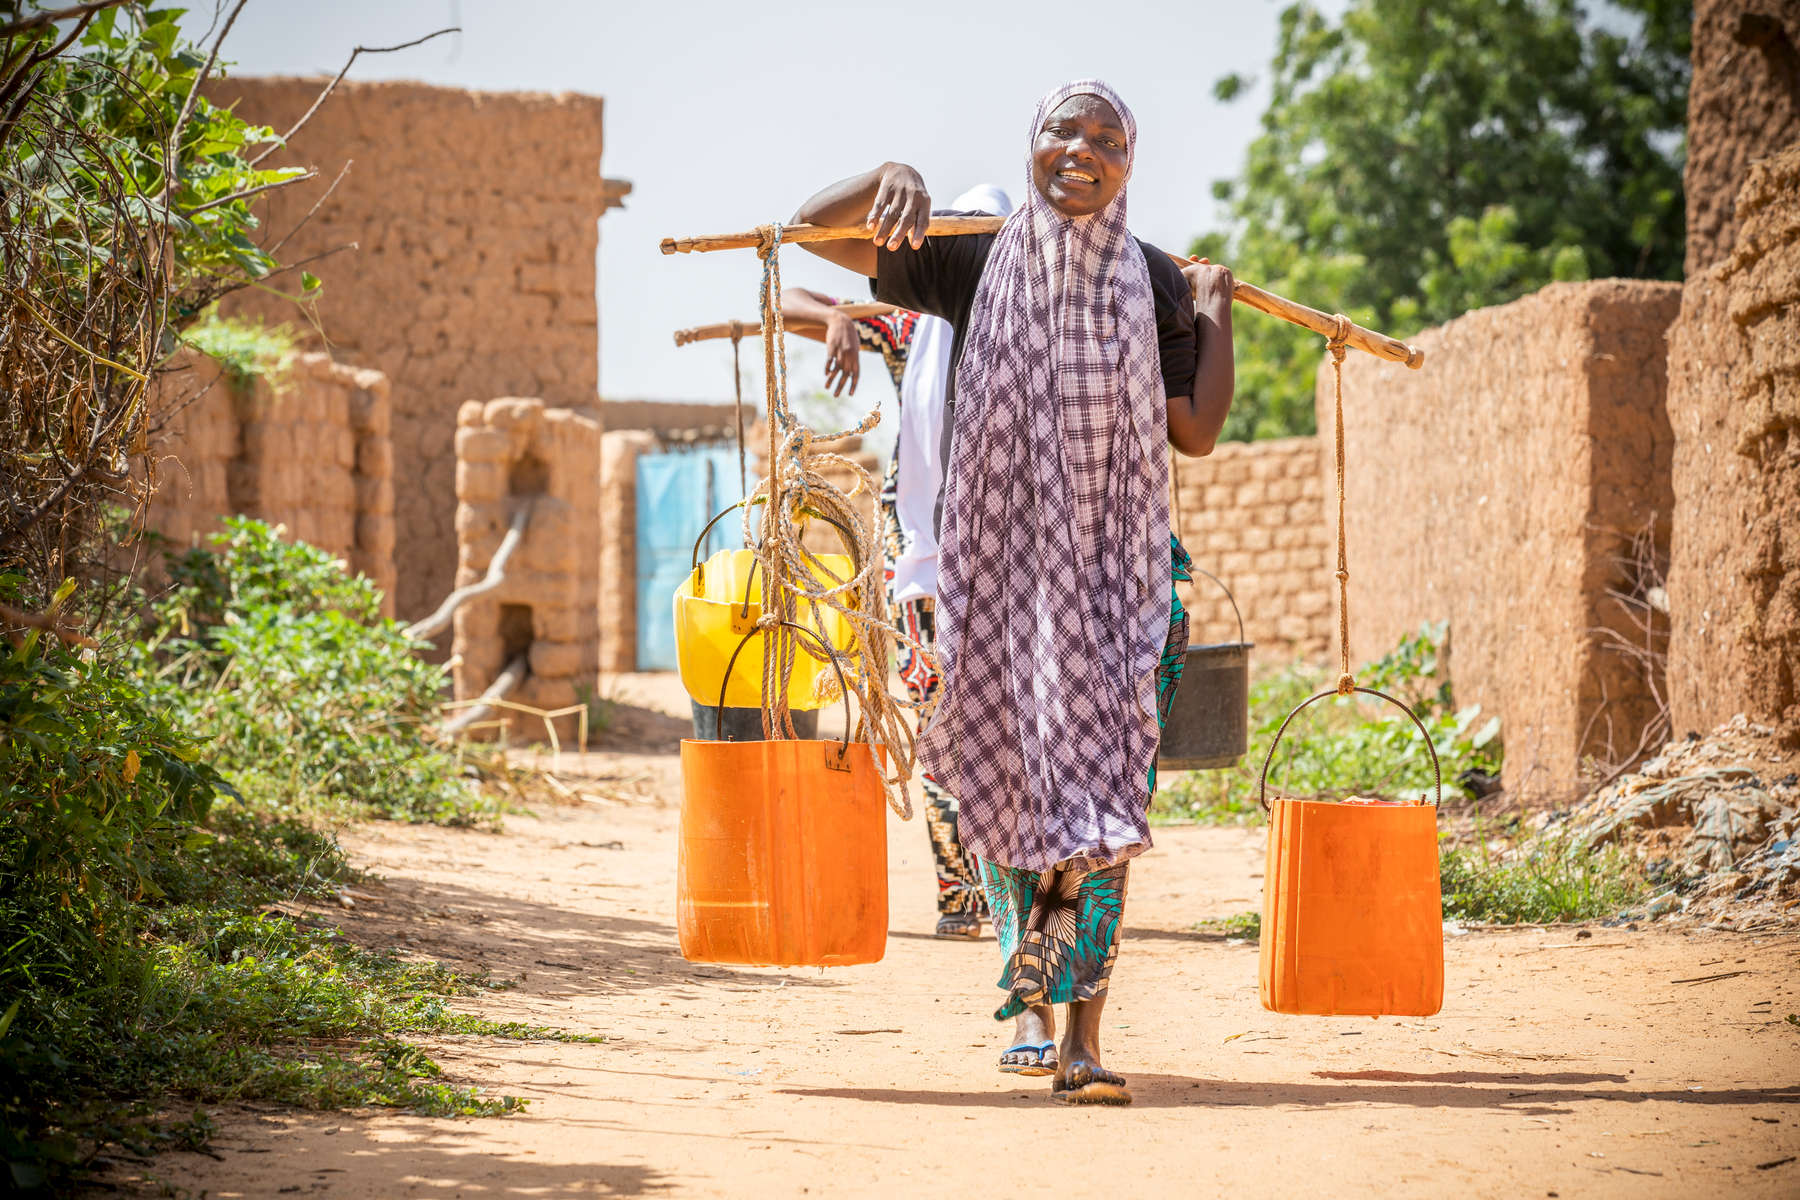 "Halima Issoufou, 26, collects water for her family. Halima lives with her husband and three children in a rudimentary mud hut in a rural village outside Niger's capital city, Niamey. Families here rely heavily on agriculture and nearly everyone lives hand-to-mouth. Halima's family is no exception, and her daily life is not unlike every other woman's in her village: from sunrise to sunset she works to care for the household, spending most of her time laboring over the day's next meal. Every day she cleans the home and dishes, collects water and firewood, and pounds millet to make the family's porridge, an arduous, lengthy process which she finishes just in time to start again. But all this work isn't enough, and the family often goes without eating — poverty is rife and they are not able to grow enough food to last them the year. ""In this area, people's lives are based on agriculture, which does not answer their needs because of the rain,"" Halima explains. ""People constantly face drought, and that makes people suffer a lot.""Between 2014 and 2016, Mercy Corps' ECOUT program responded, providing them with millet seeds; cash-for-work to restore farmland; goats; and training on agriculture, nutrition and hygiene. While conditions remain harsh and finding enough food is still a daily struggle, the family is still feeling some of the benefits from that program, particularly the hygiene and sanitation training, through which Halima learned to wash her dishes before cooking, and exclusively breastfeed her children for the first six months of life."